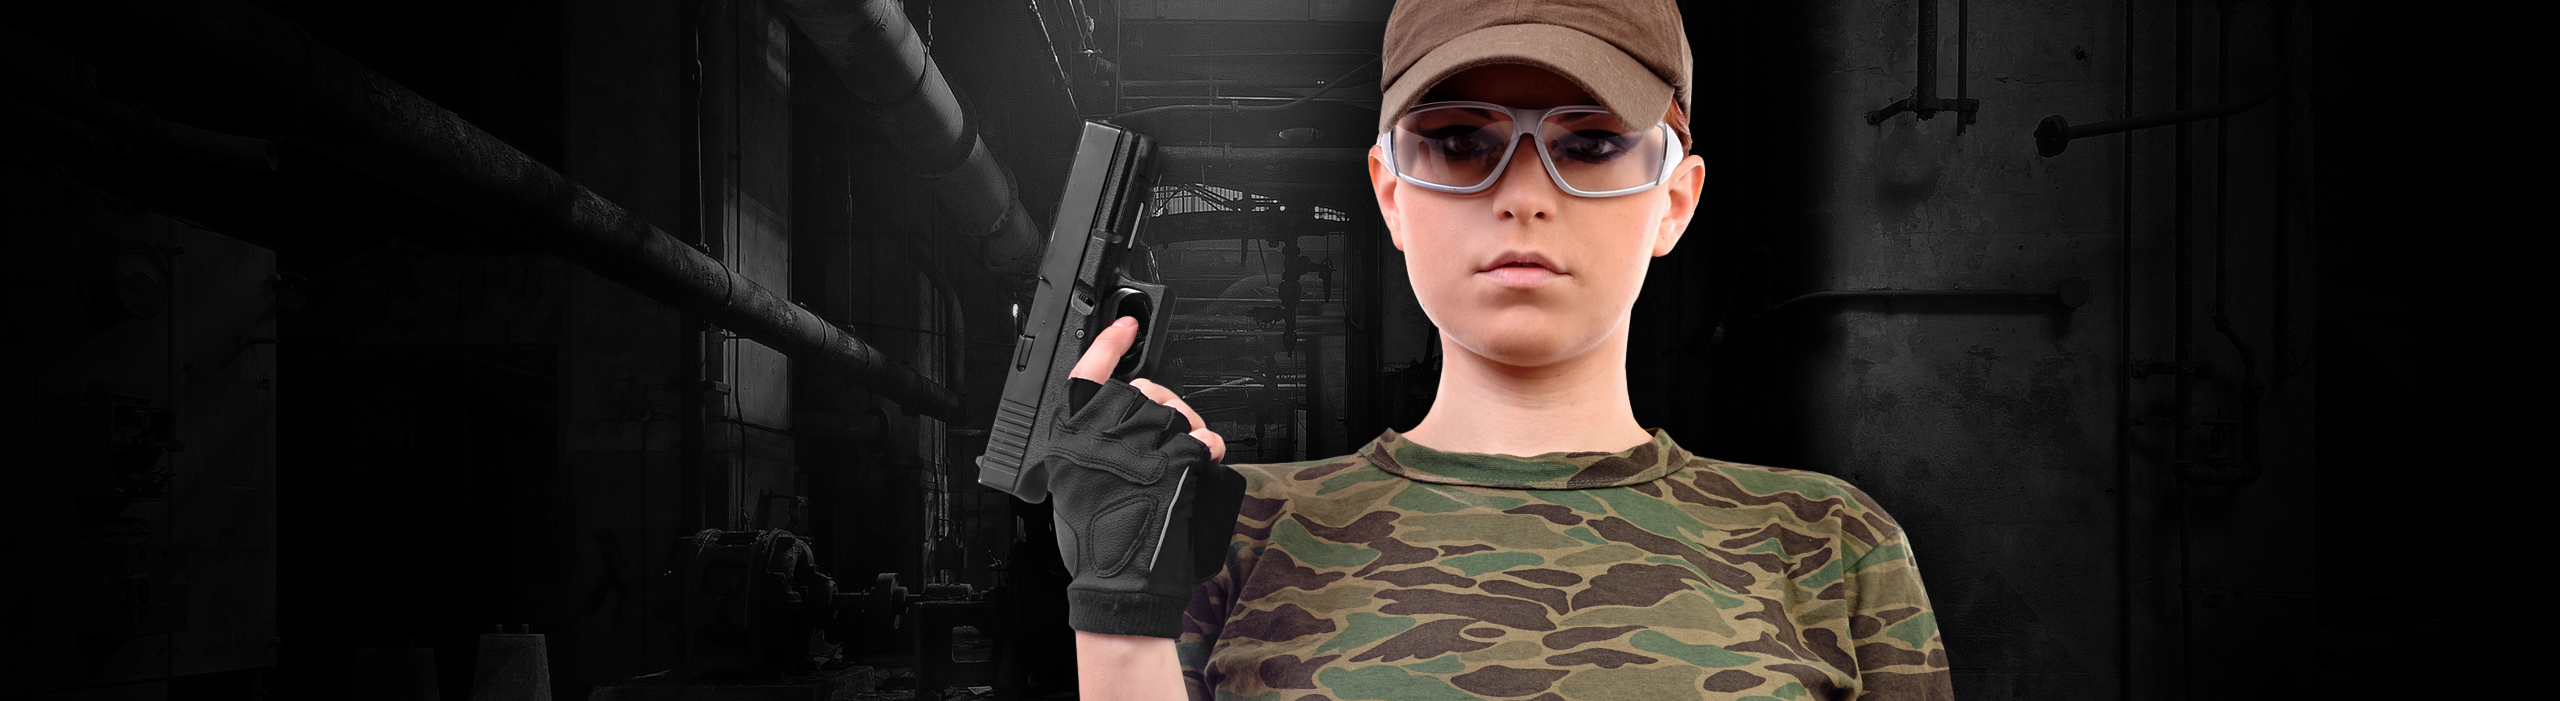 WE AIRSOFT PISTOLS AT JUST AIRSOFT GUNS USA